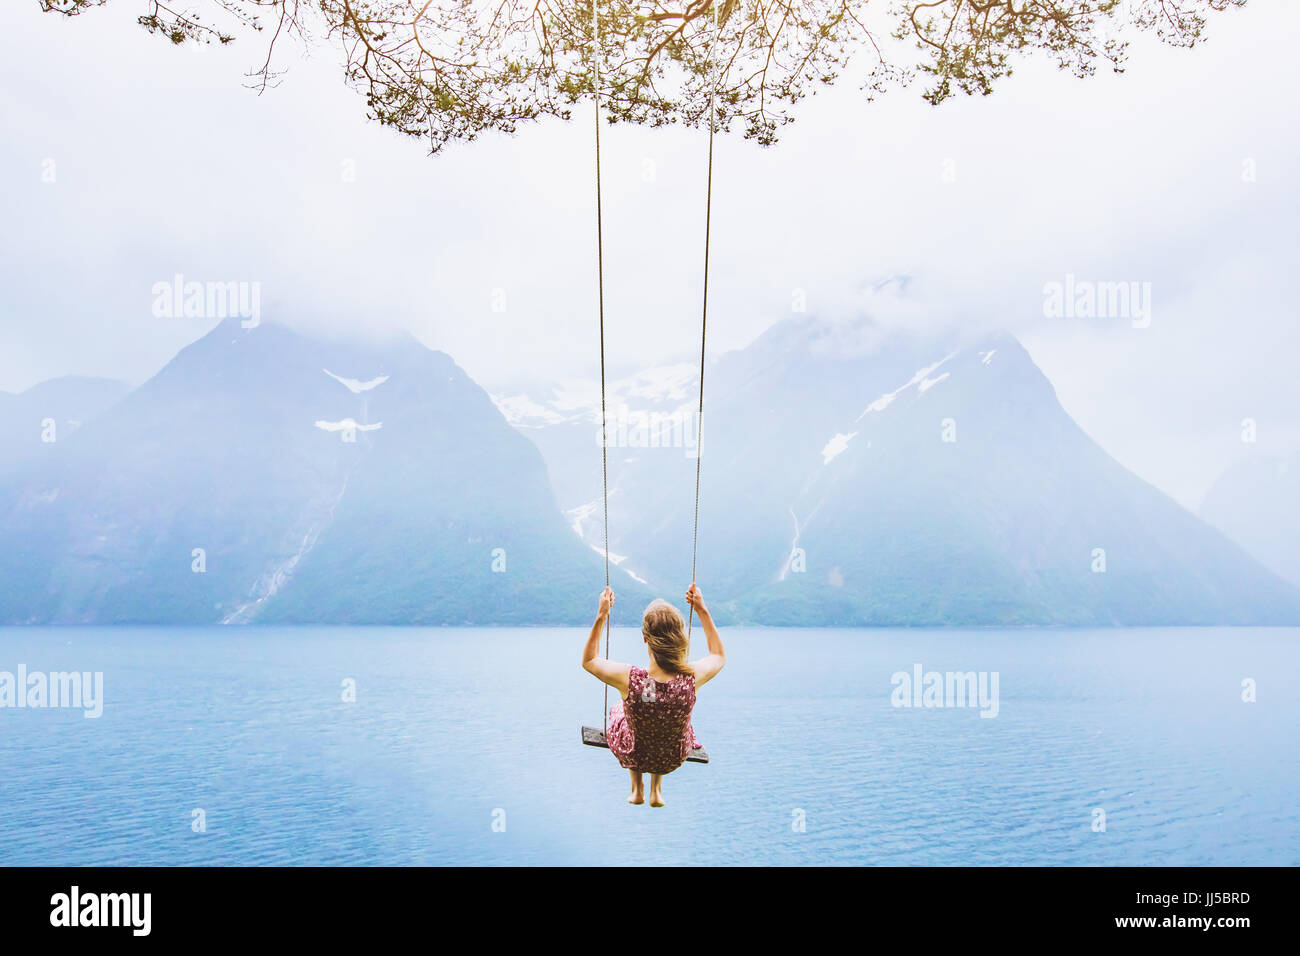 dream concept, beautiful young woman on the swing in fjord Norway, inspiring landscape - Stock Image